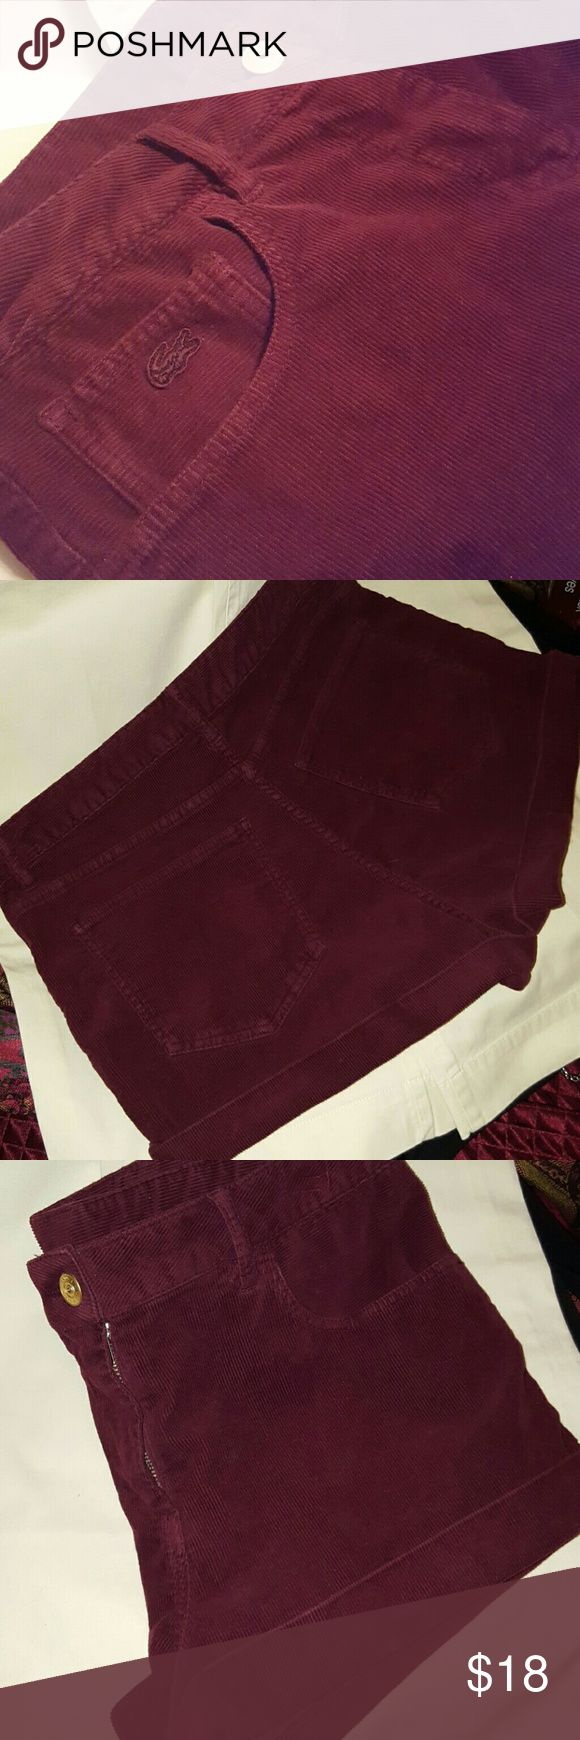 "Lacoste! Never worn! Lacoste Live! shorts, womens size Medium (will fit size 4 or 6), 11"" from top to bottom, beautiful burgandy color, corduroy texture, 98% cotton/ 2% elastane, perfect unworn condition! Lacoste Shorts"